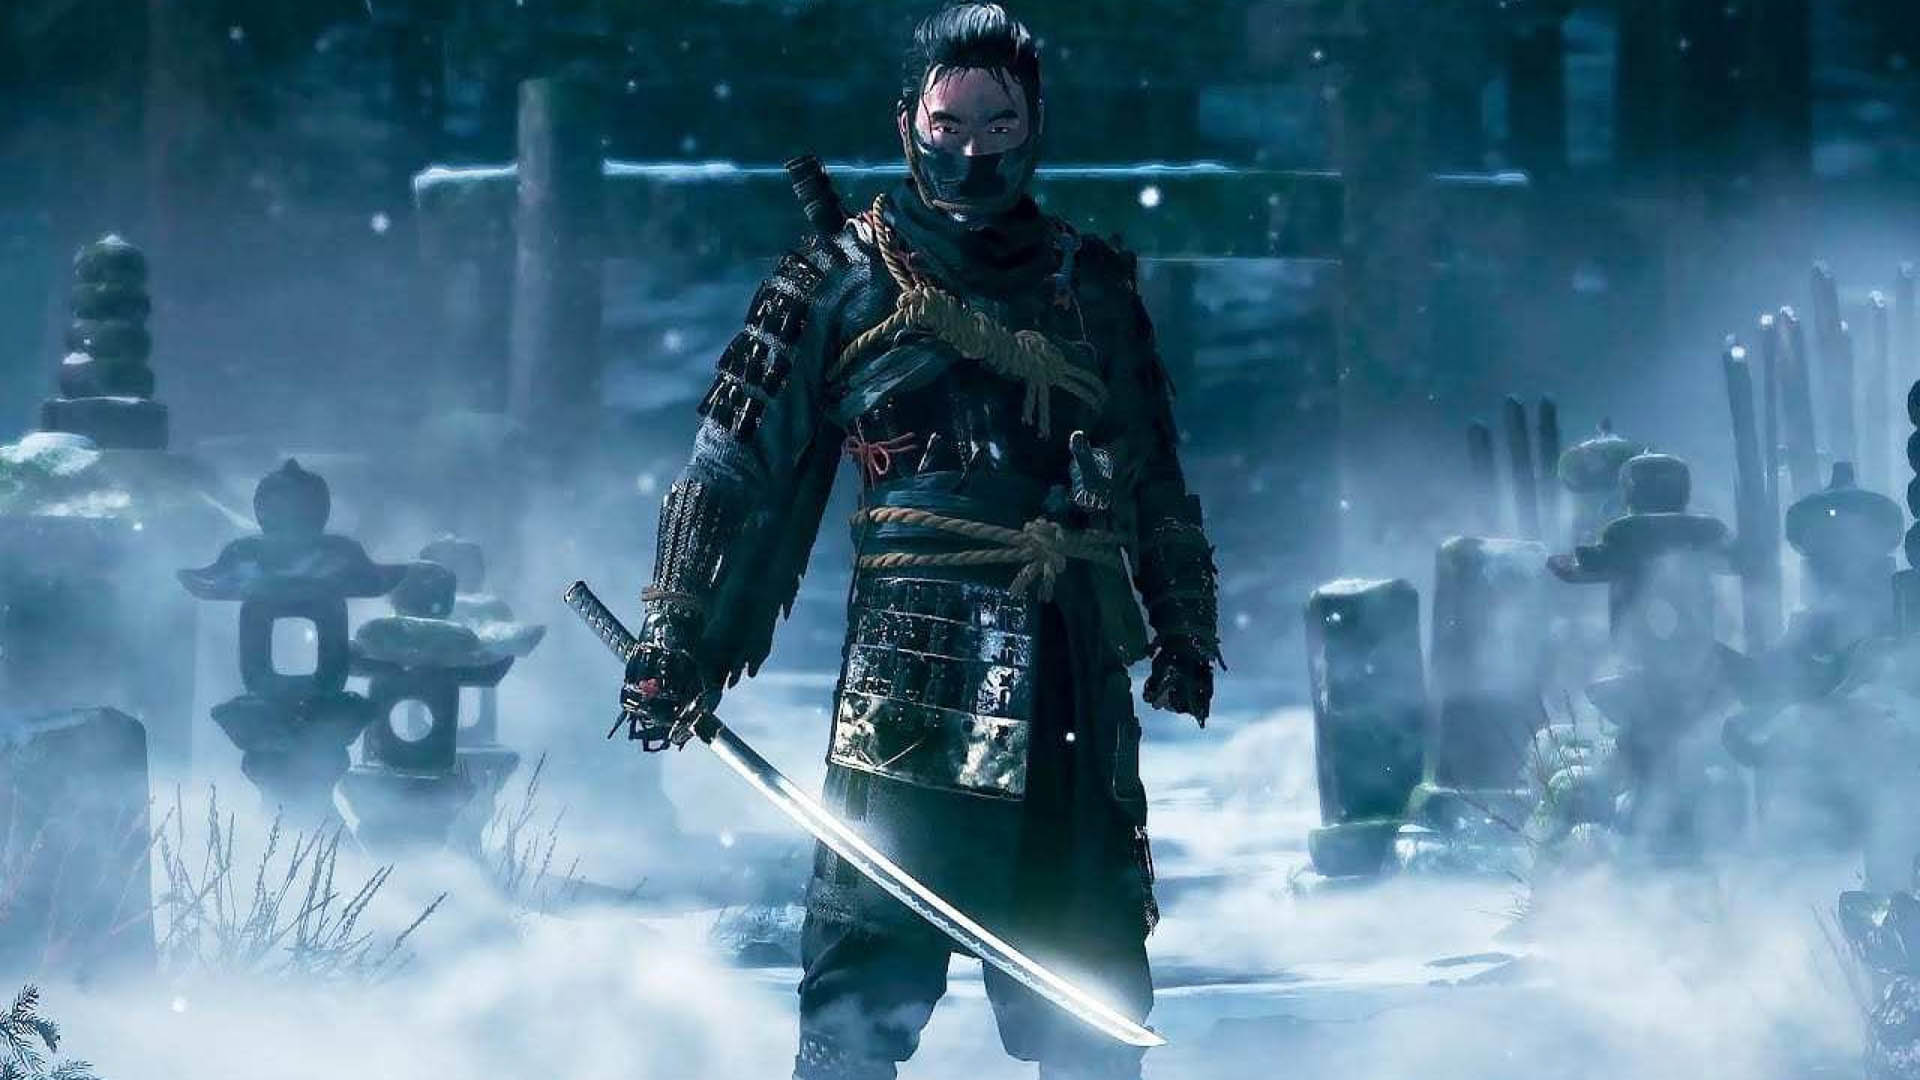 Ghost Of Tsushima Surprised Sony With Its Critical And Commercial Performance, According To PlayStation CEO